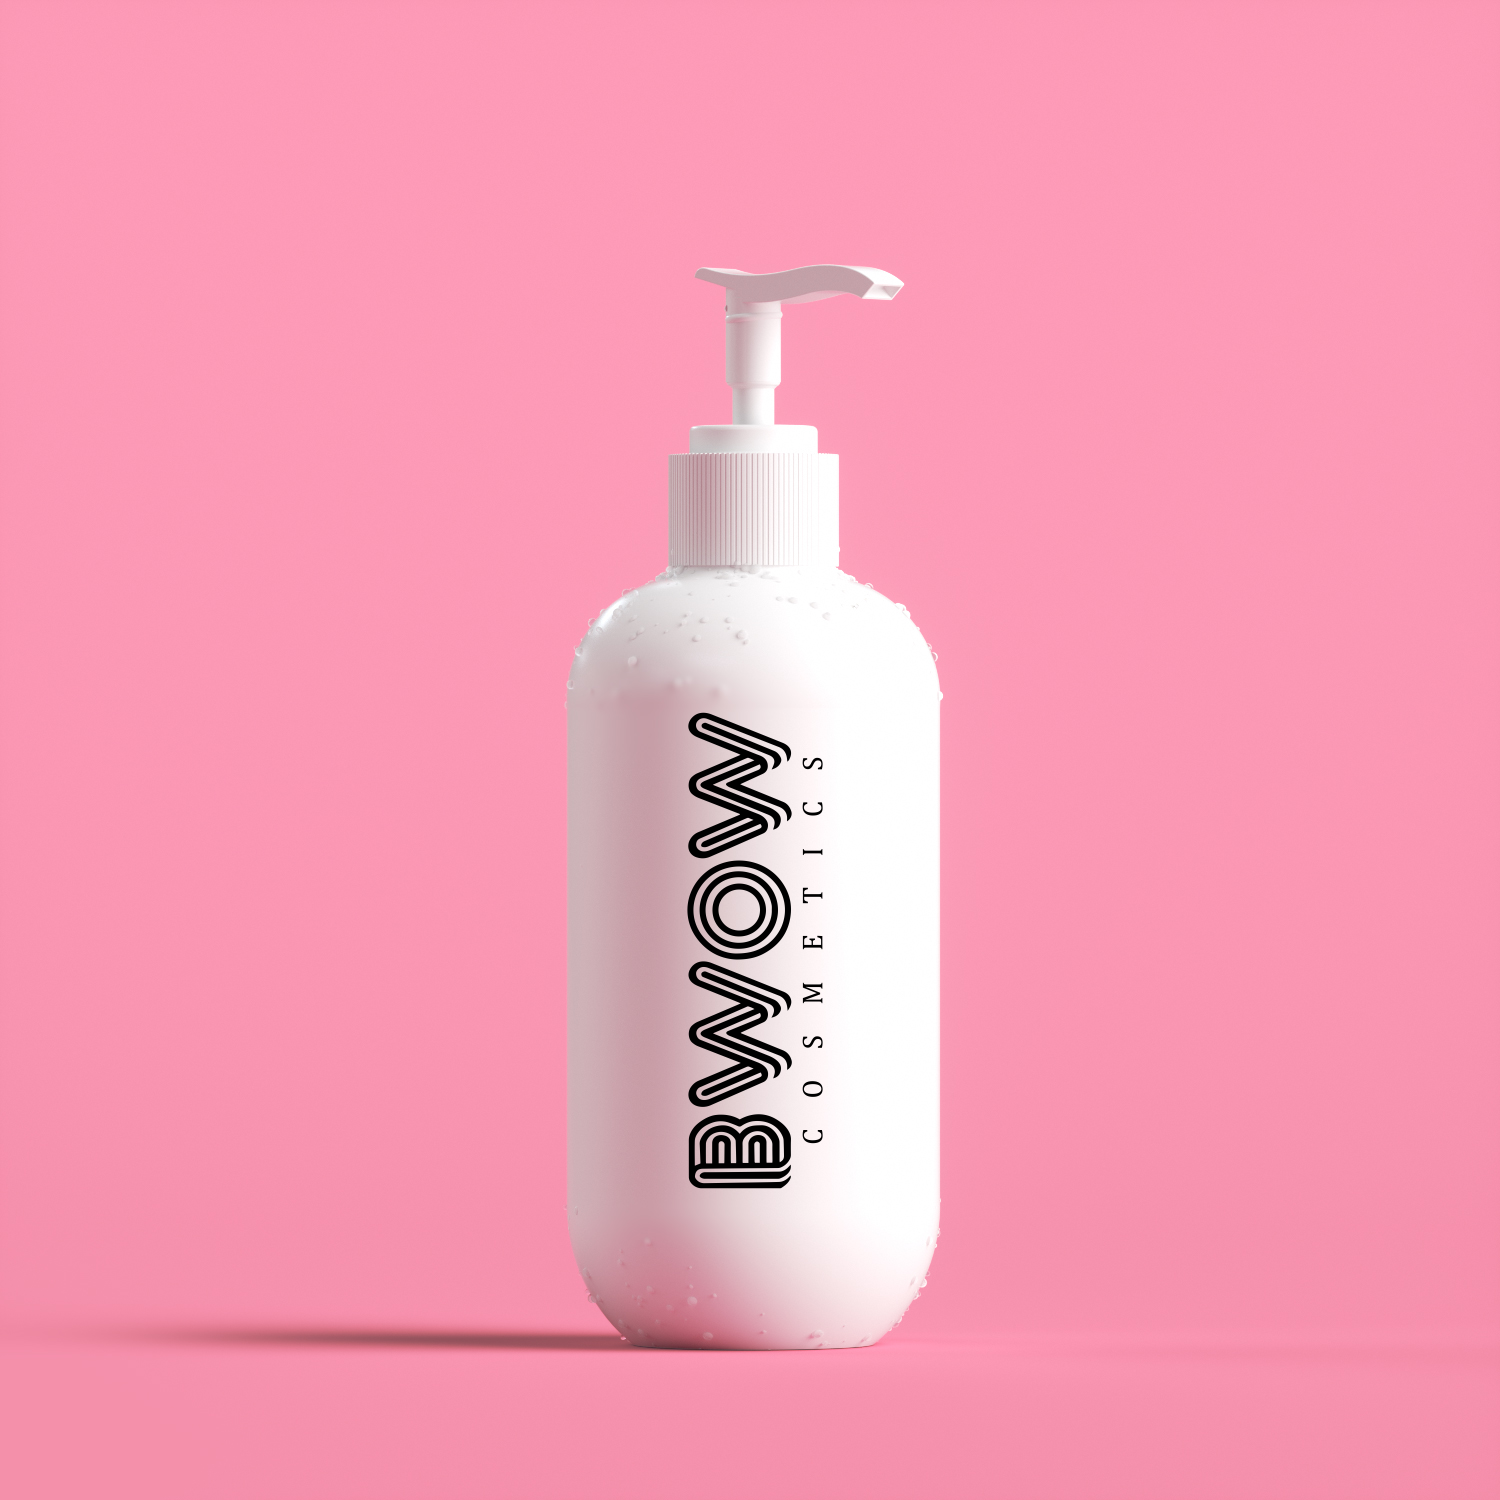 bwowcosmetics-com beauty product